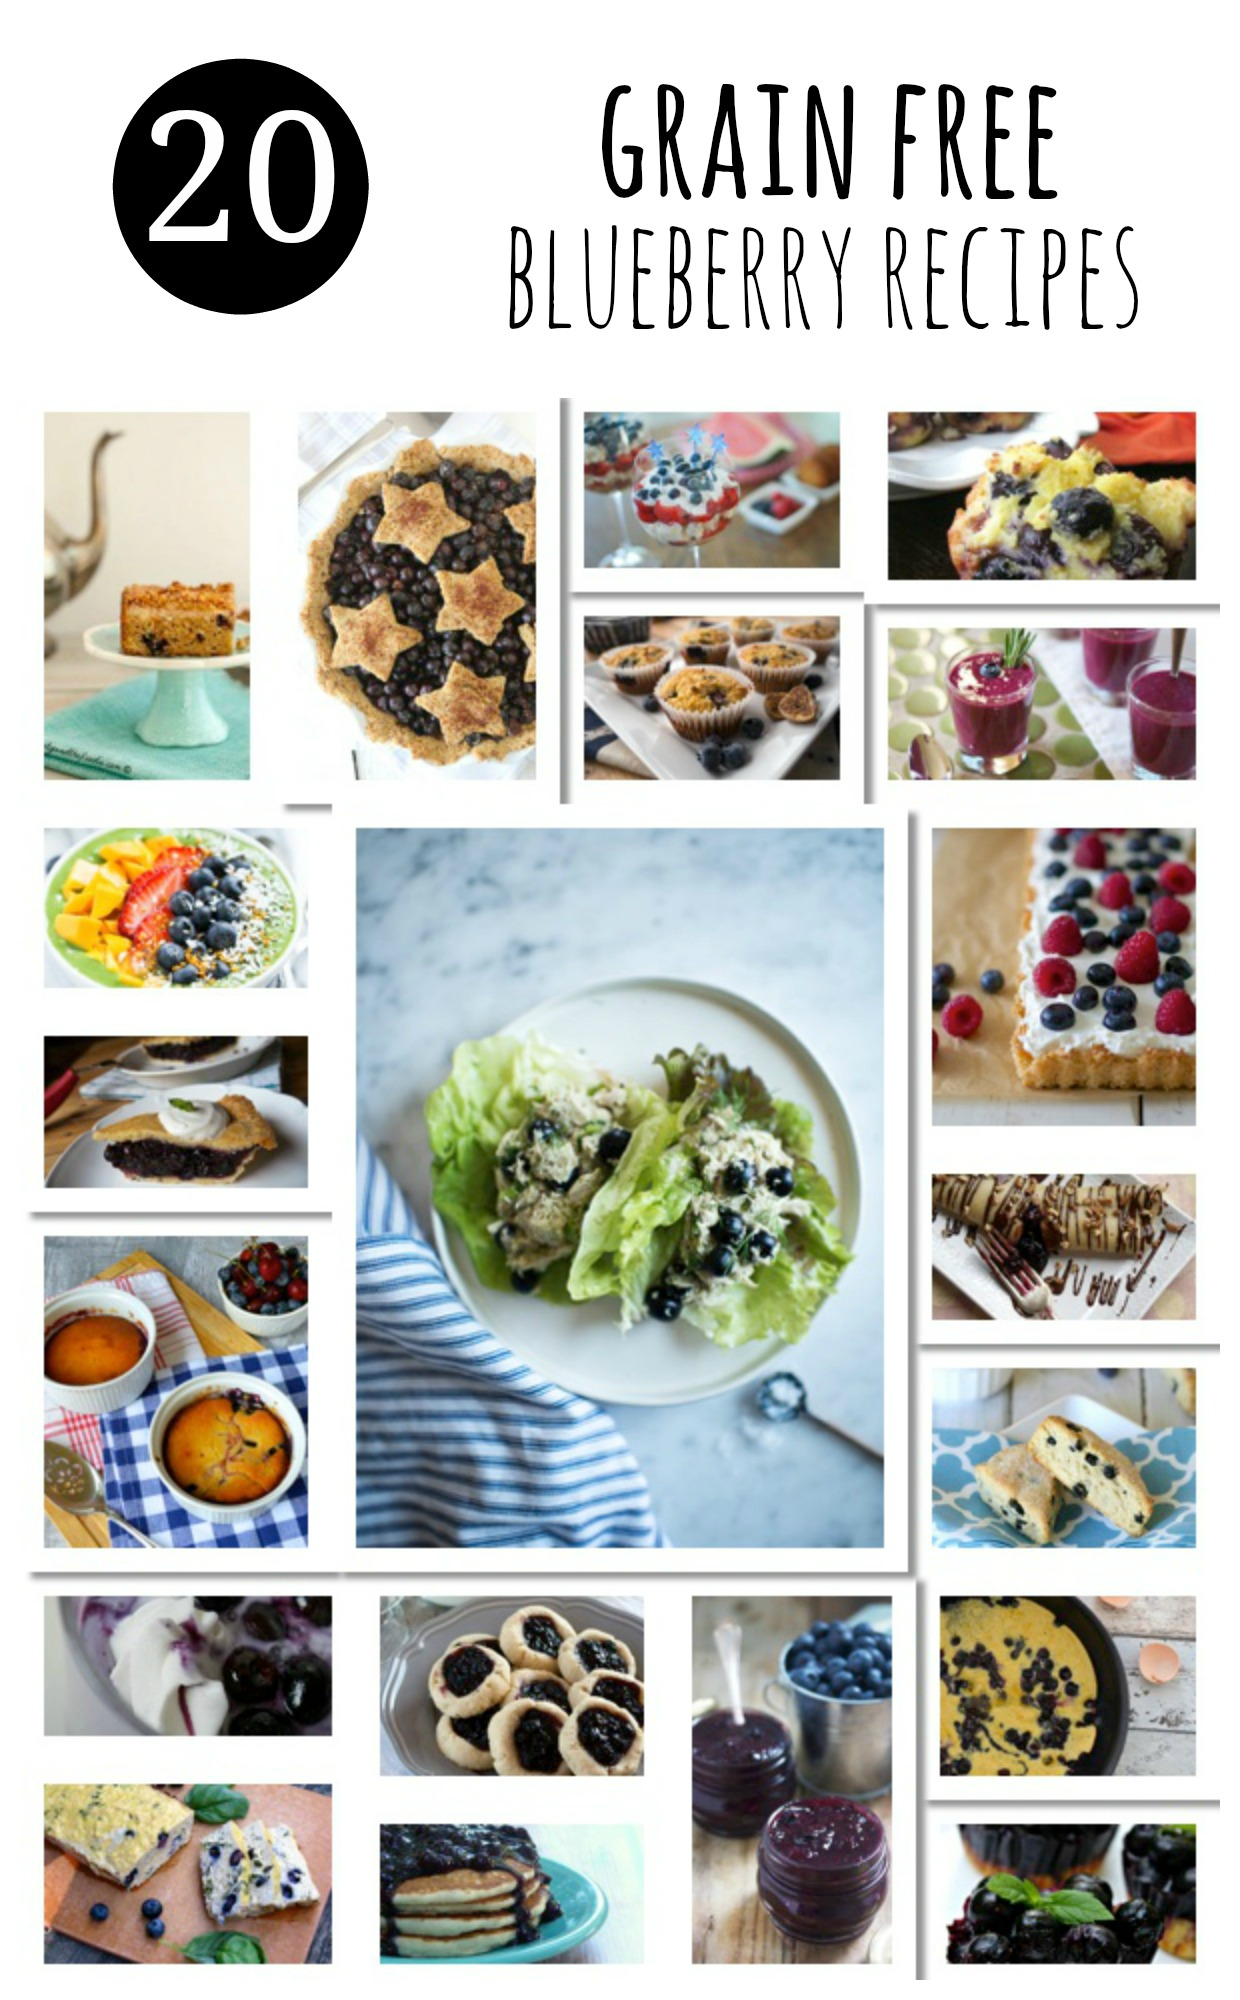 20 Grain Free Blueberry Recipes from the best Paleo bloggers.